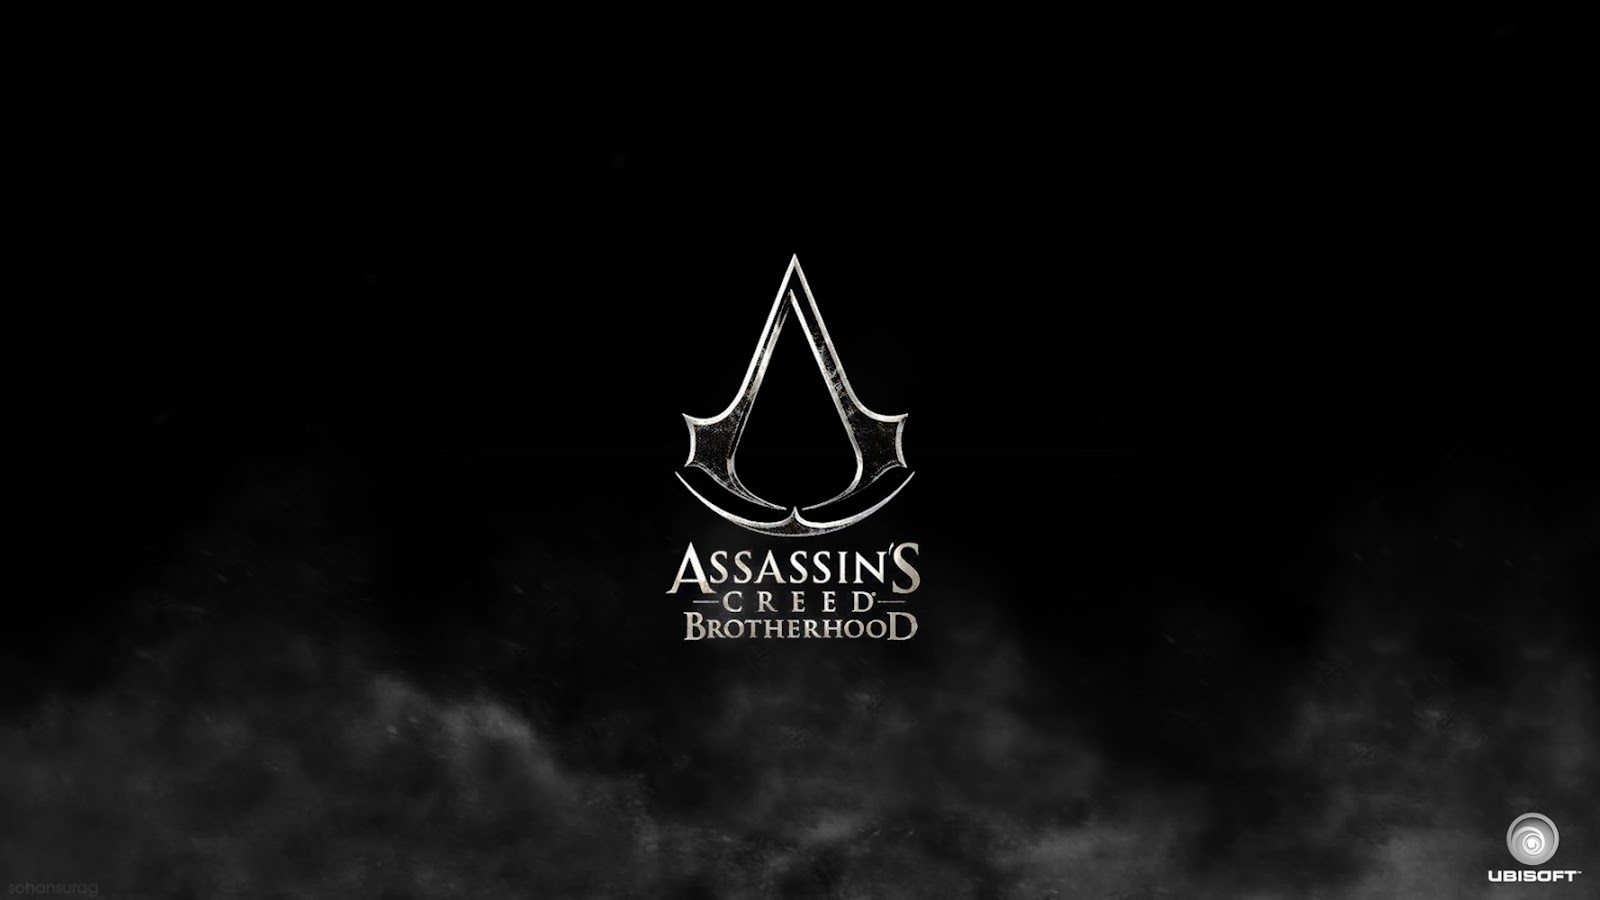 Assassins Creed Symbol Wallpaper - WallpaperSafari